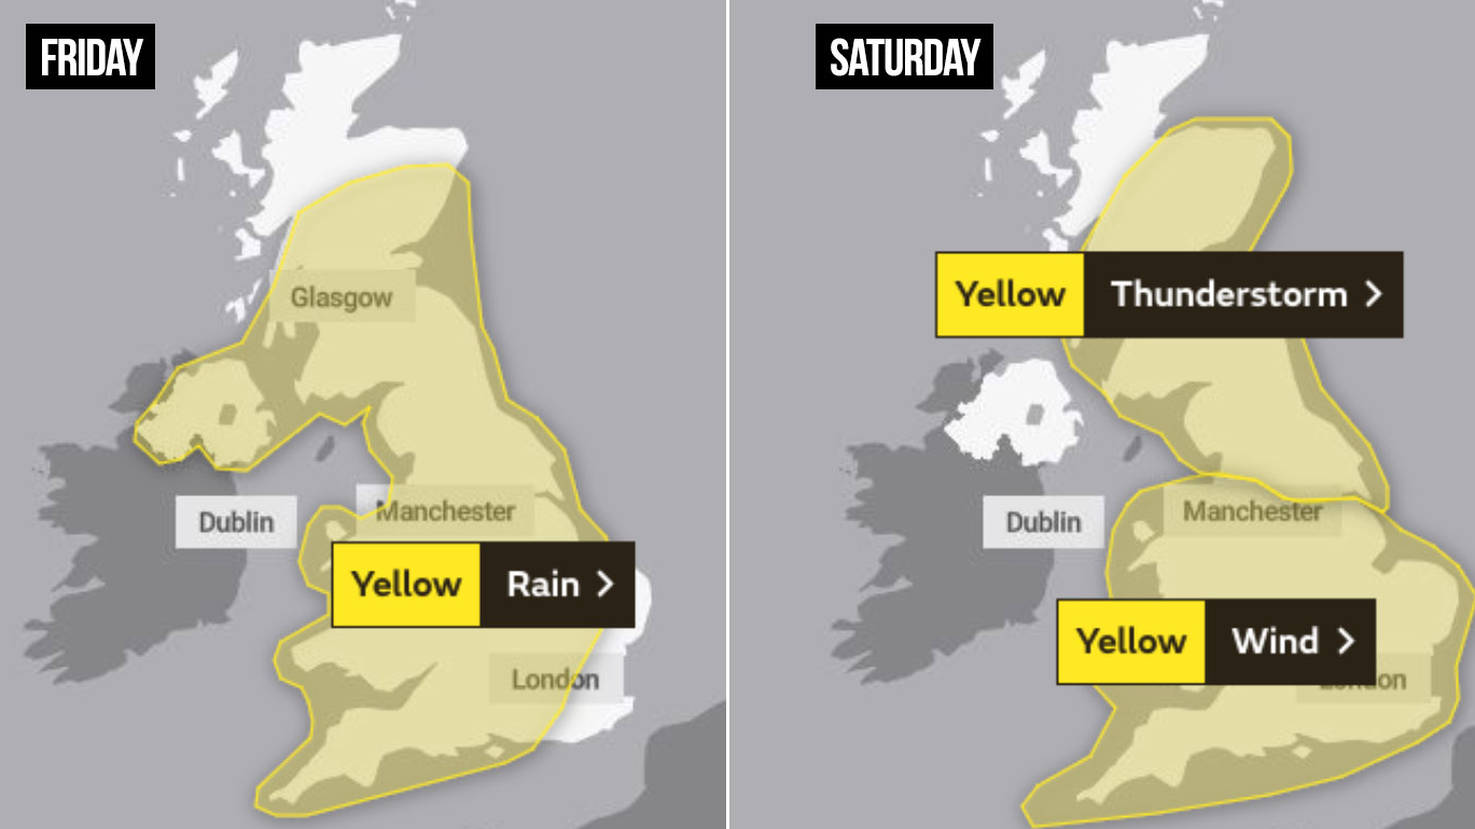 UK Weather Forecast: Britain To Be Battered By Storms And 50mph Winds